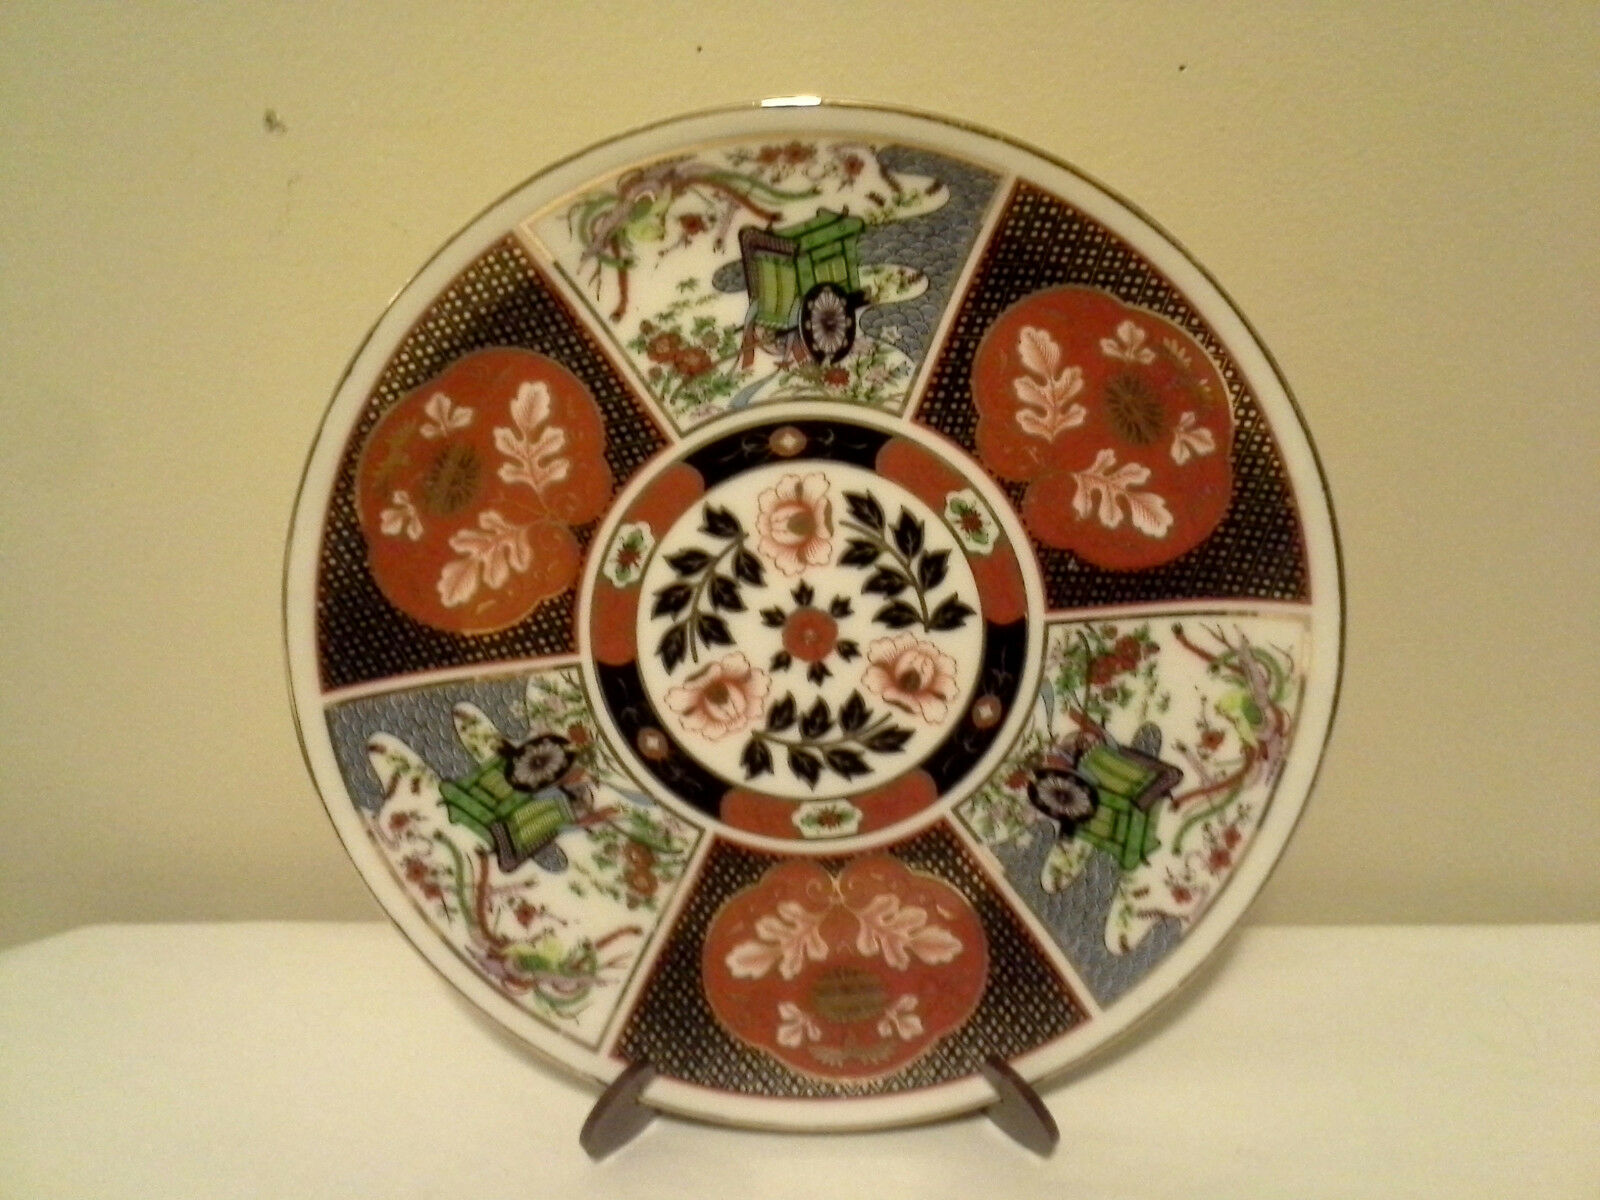 dating japanese imari plates Large 15 inch japanese blue and white charger plate porcelain, 20th century  pair of 19th century japanese porcelain imari chargers  a monumental pair of japanese meiji period imari porcelain vases, dating from the late 19th century.